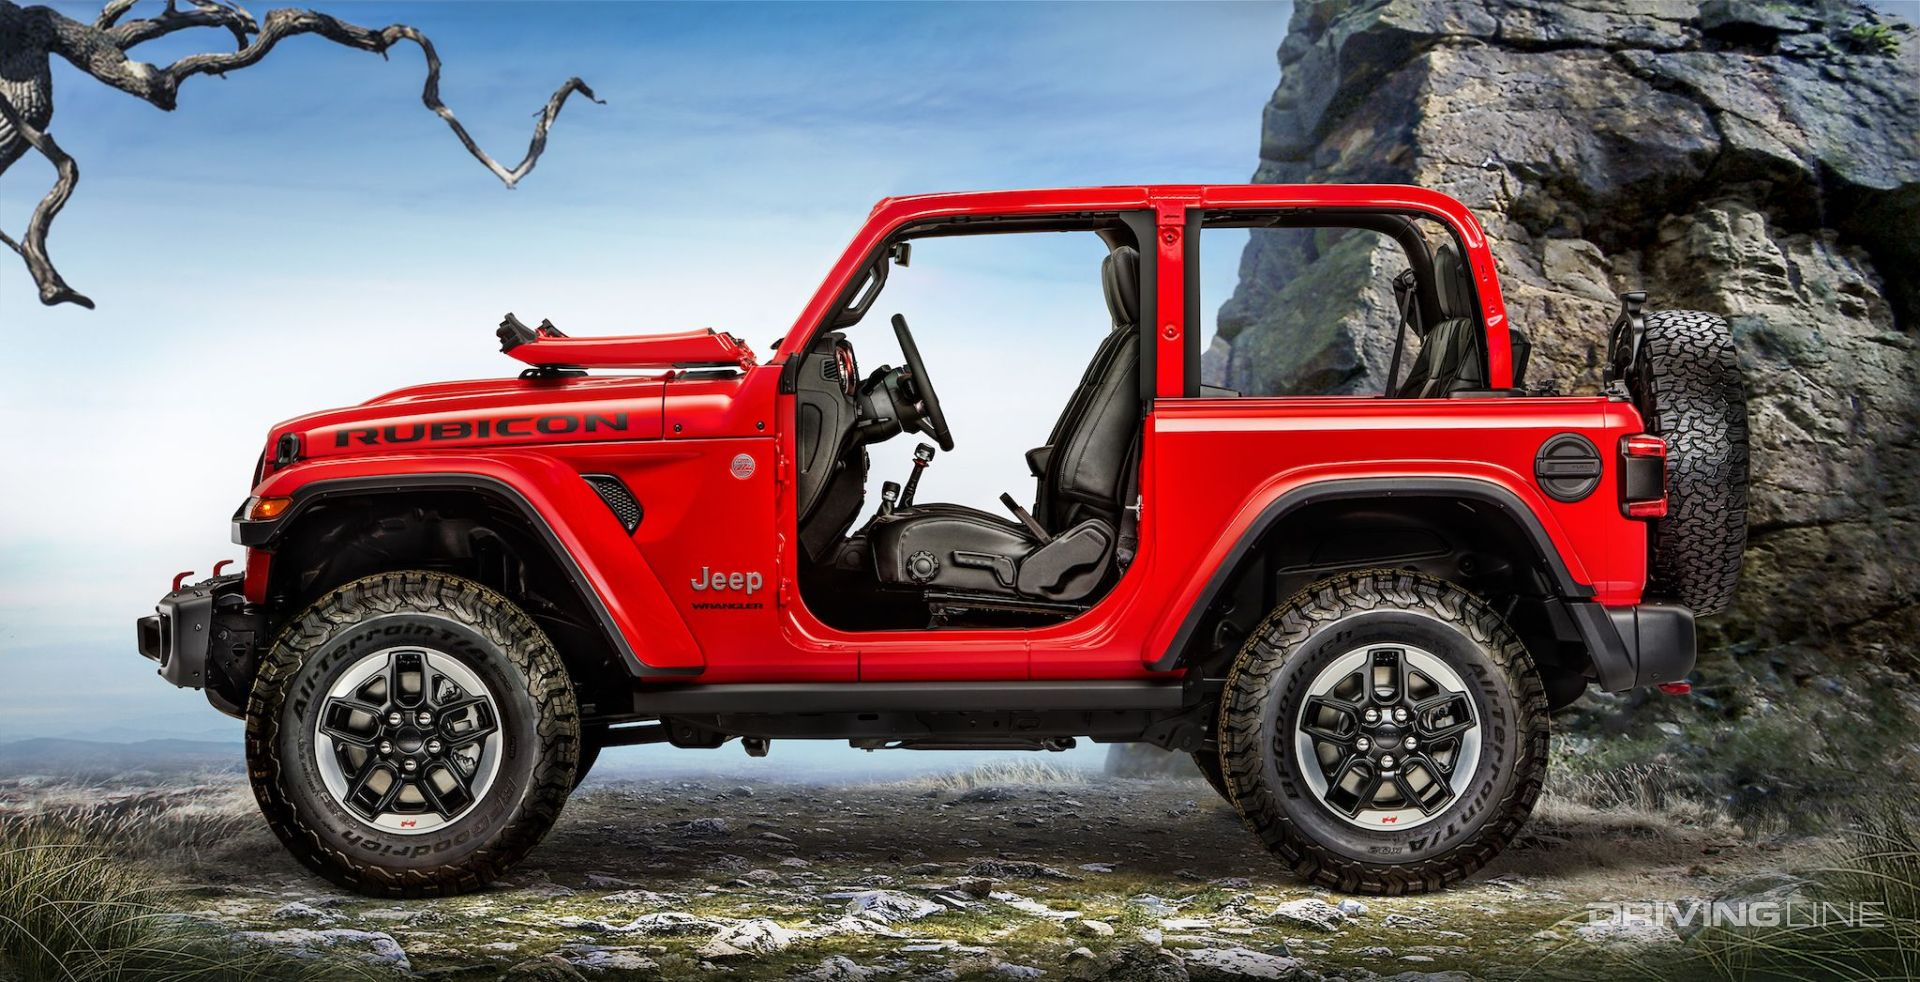 The Jl Is Here 10 Things You Need To Know About All New 2018 Jeep Wrangler Drivingline